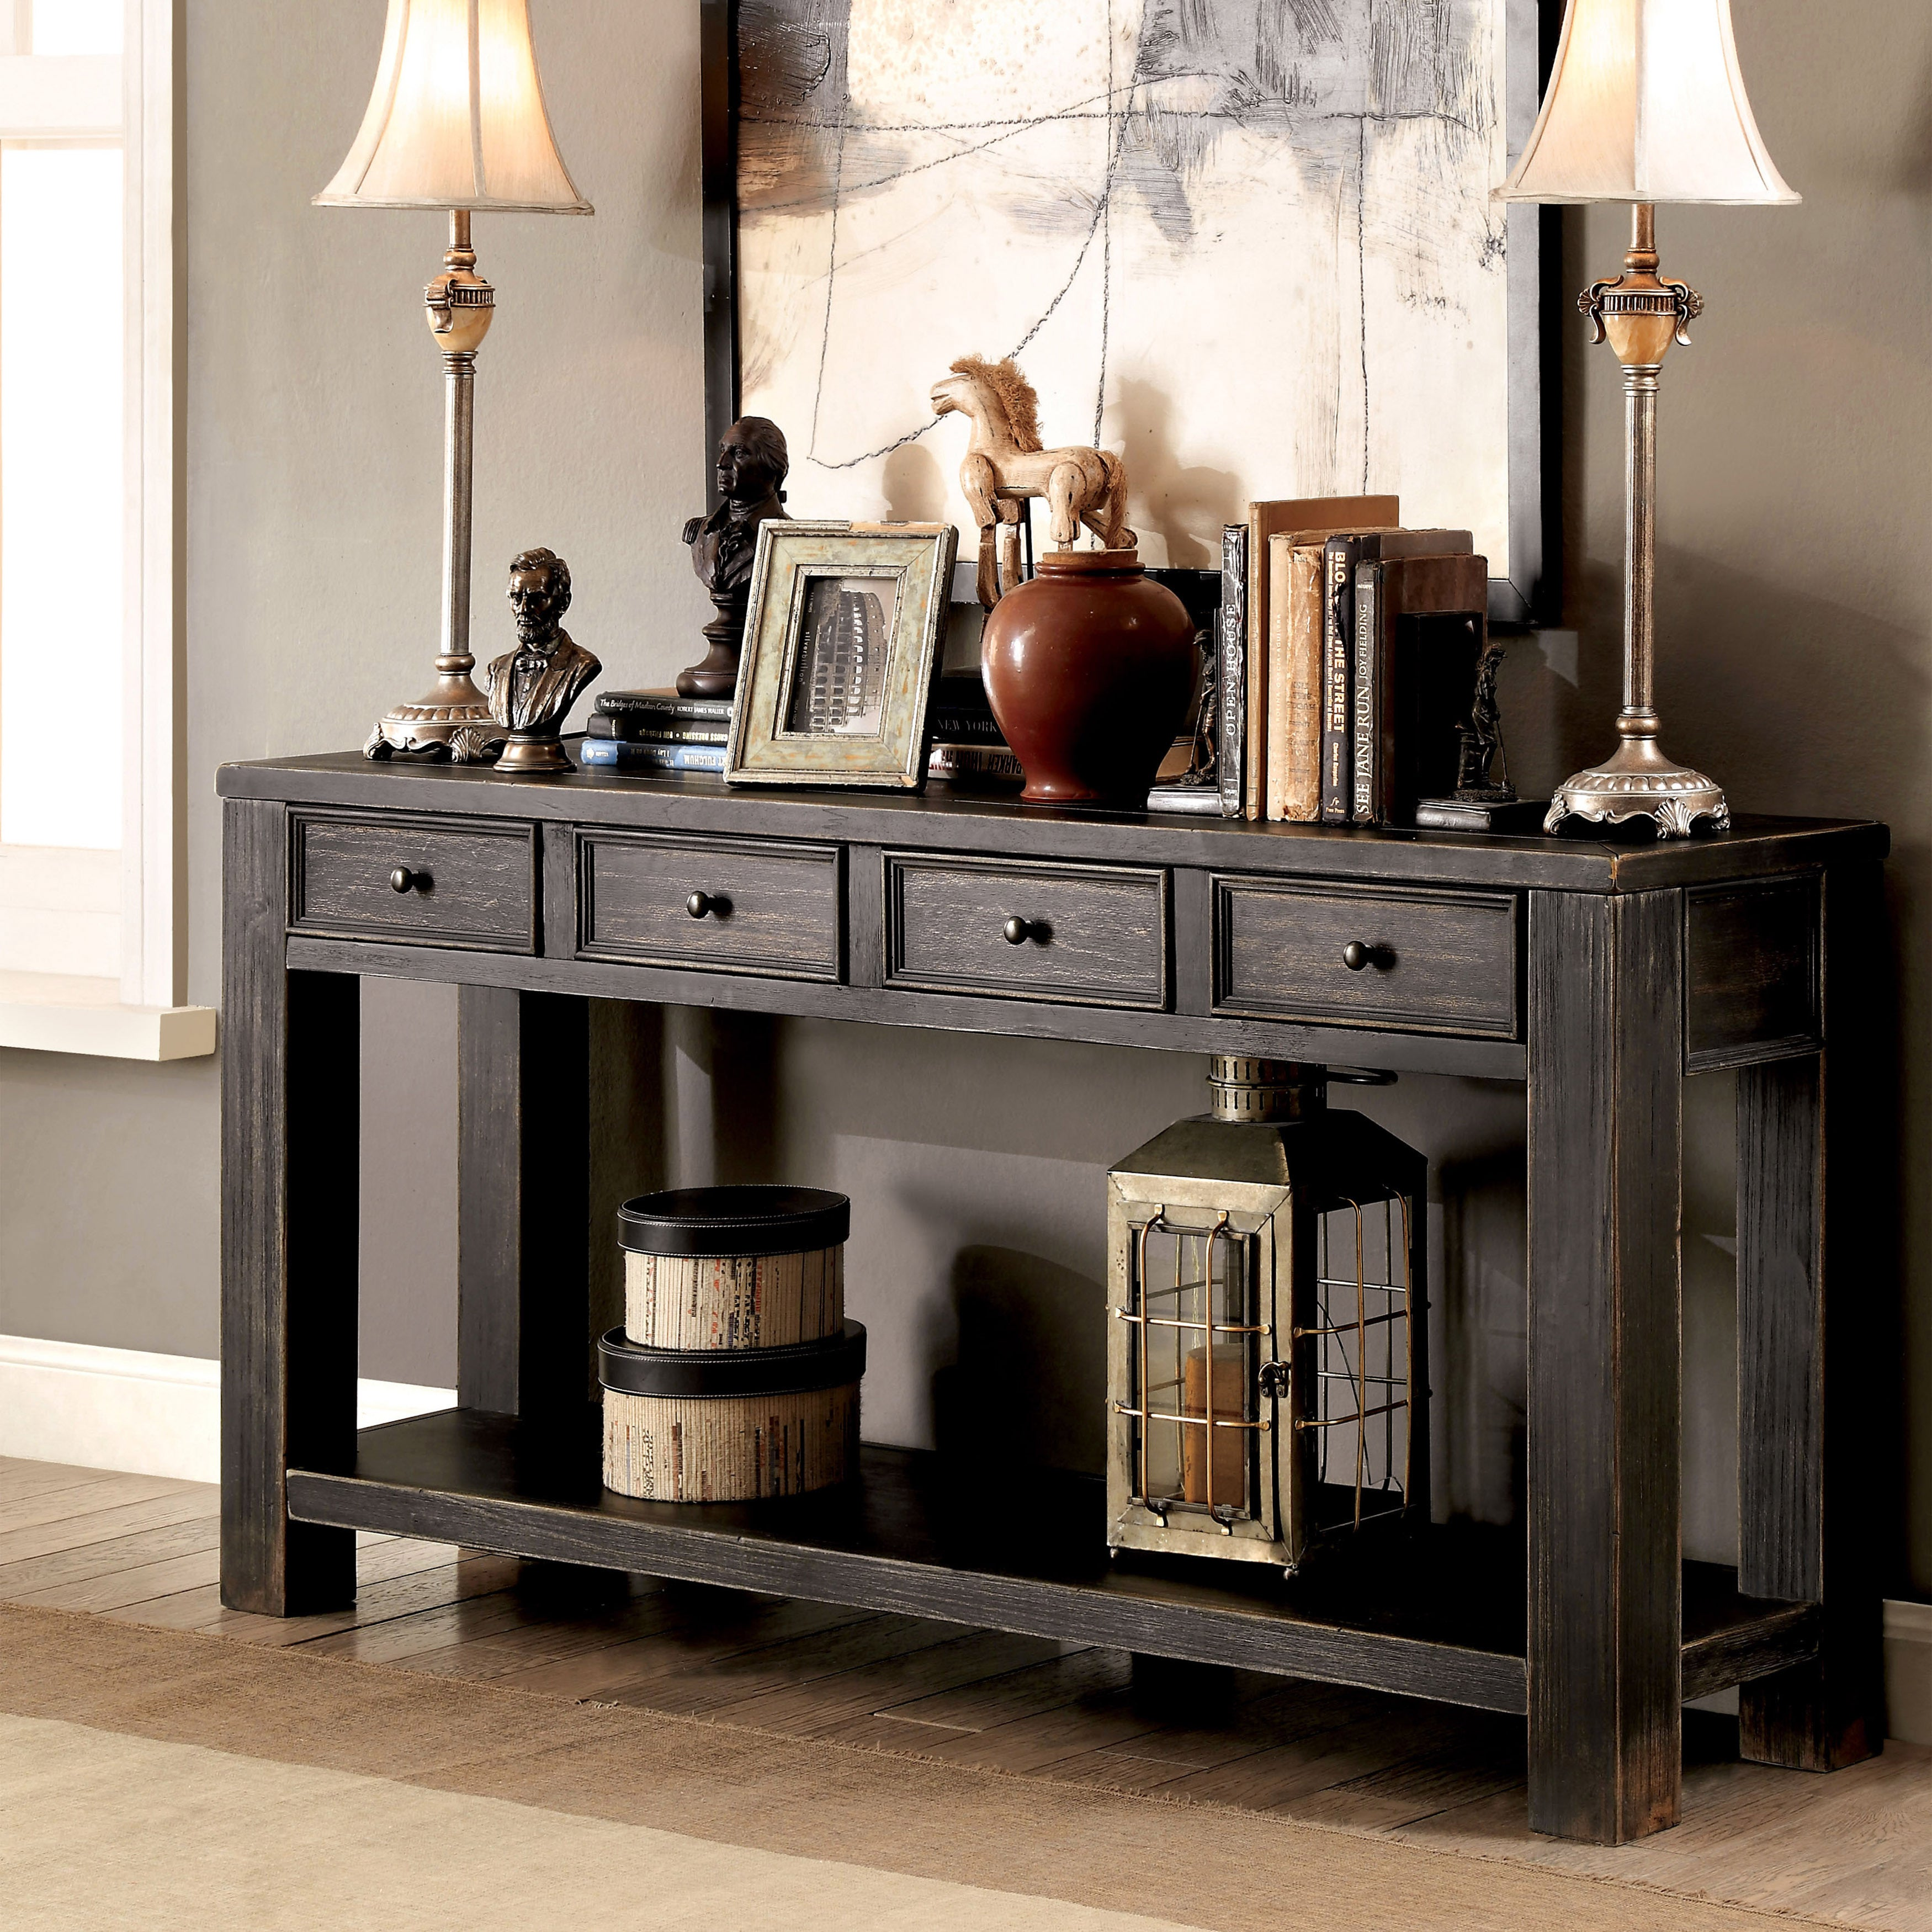 Antique plank table compare prices at nextag for Furniture of america architectural inspired dark espresso coffee table